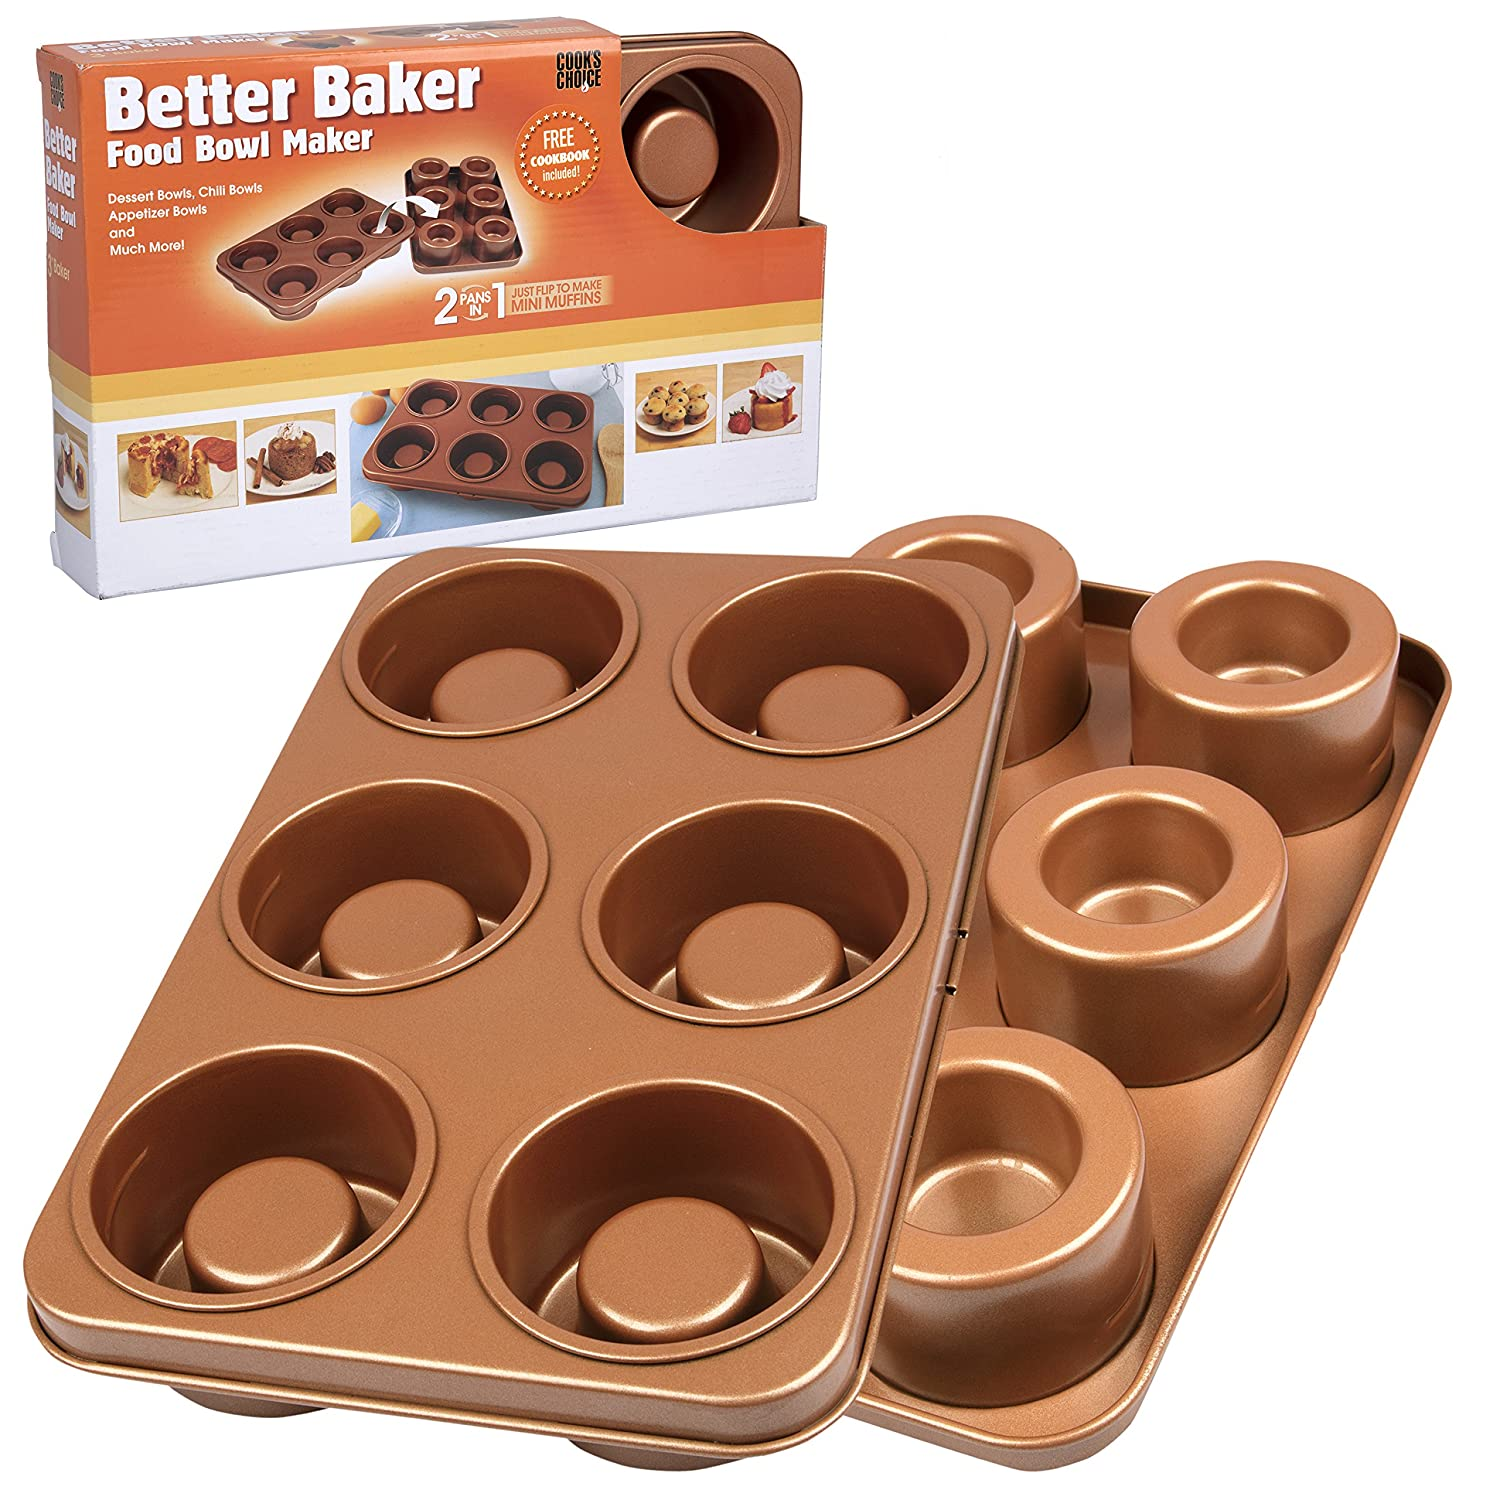 The Original Better Baker Edible Food Bowl Maker- Bake 6 Three Inch Dessert & Dinner Bowls or Mini Muffins Cook's Choice CKH_BB3_002